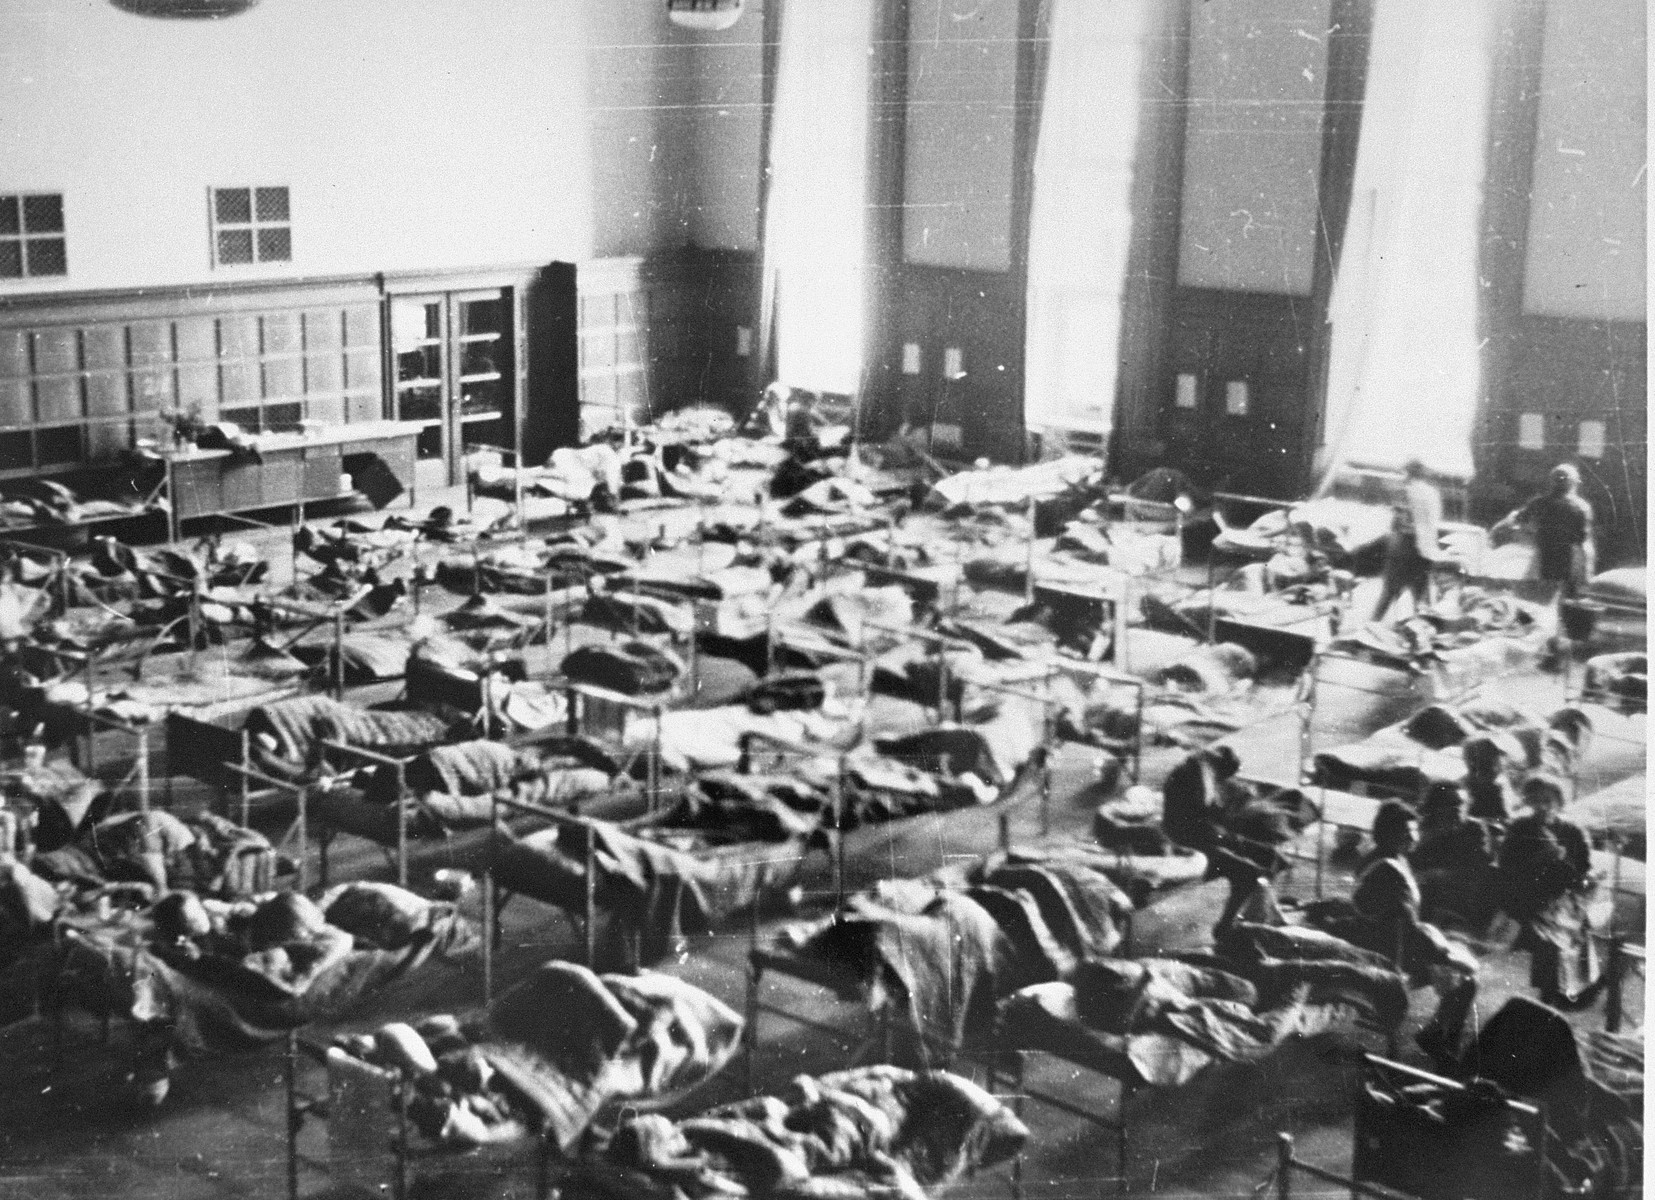 Bergen-Belsen survivors are treated in an improvised hospital set up with hundreds of beds in the Rundhaus, the former headquarters of the German Army in Bergen-Belsen.